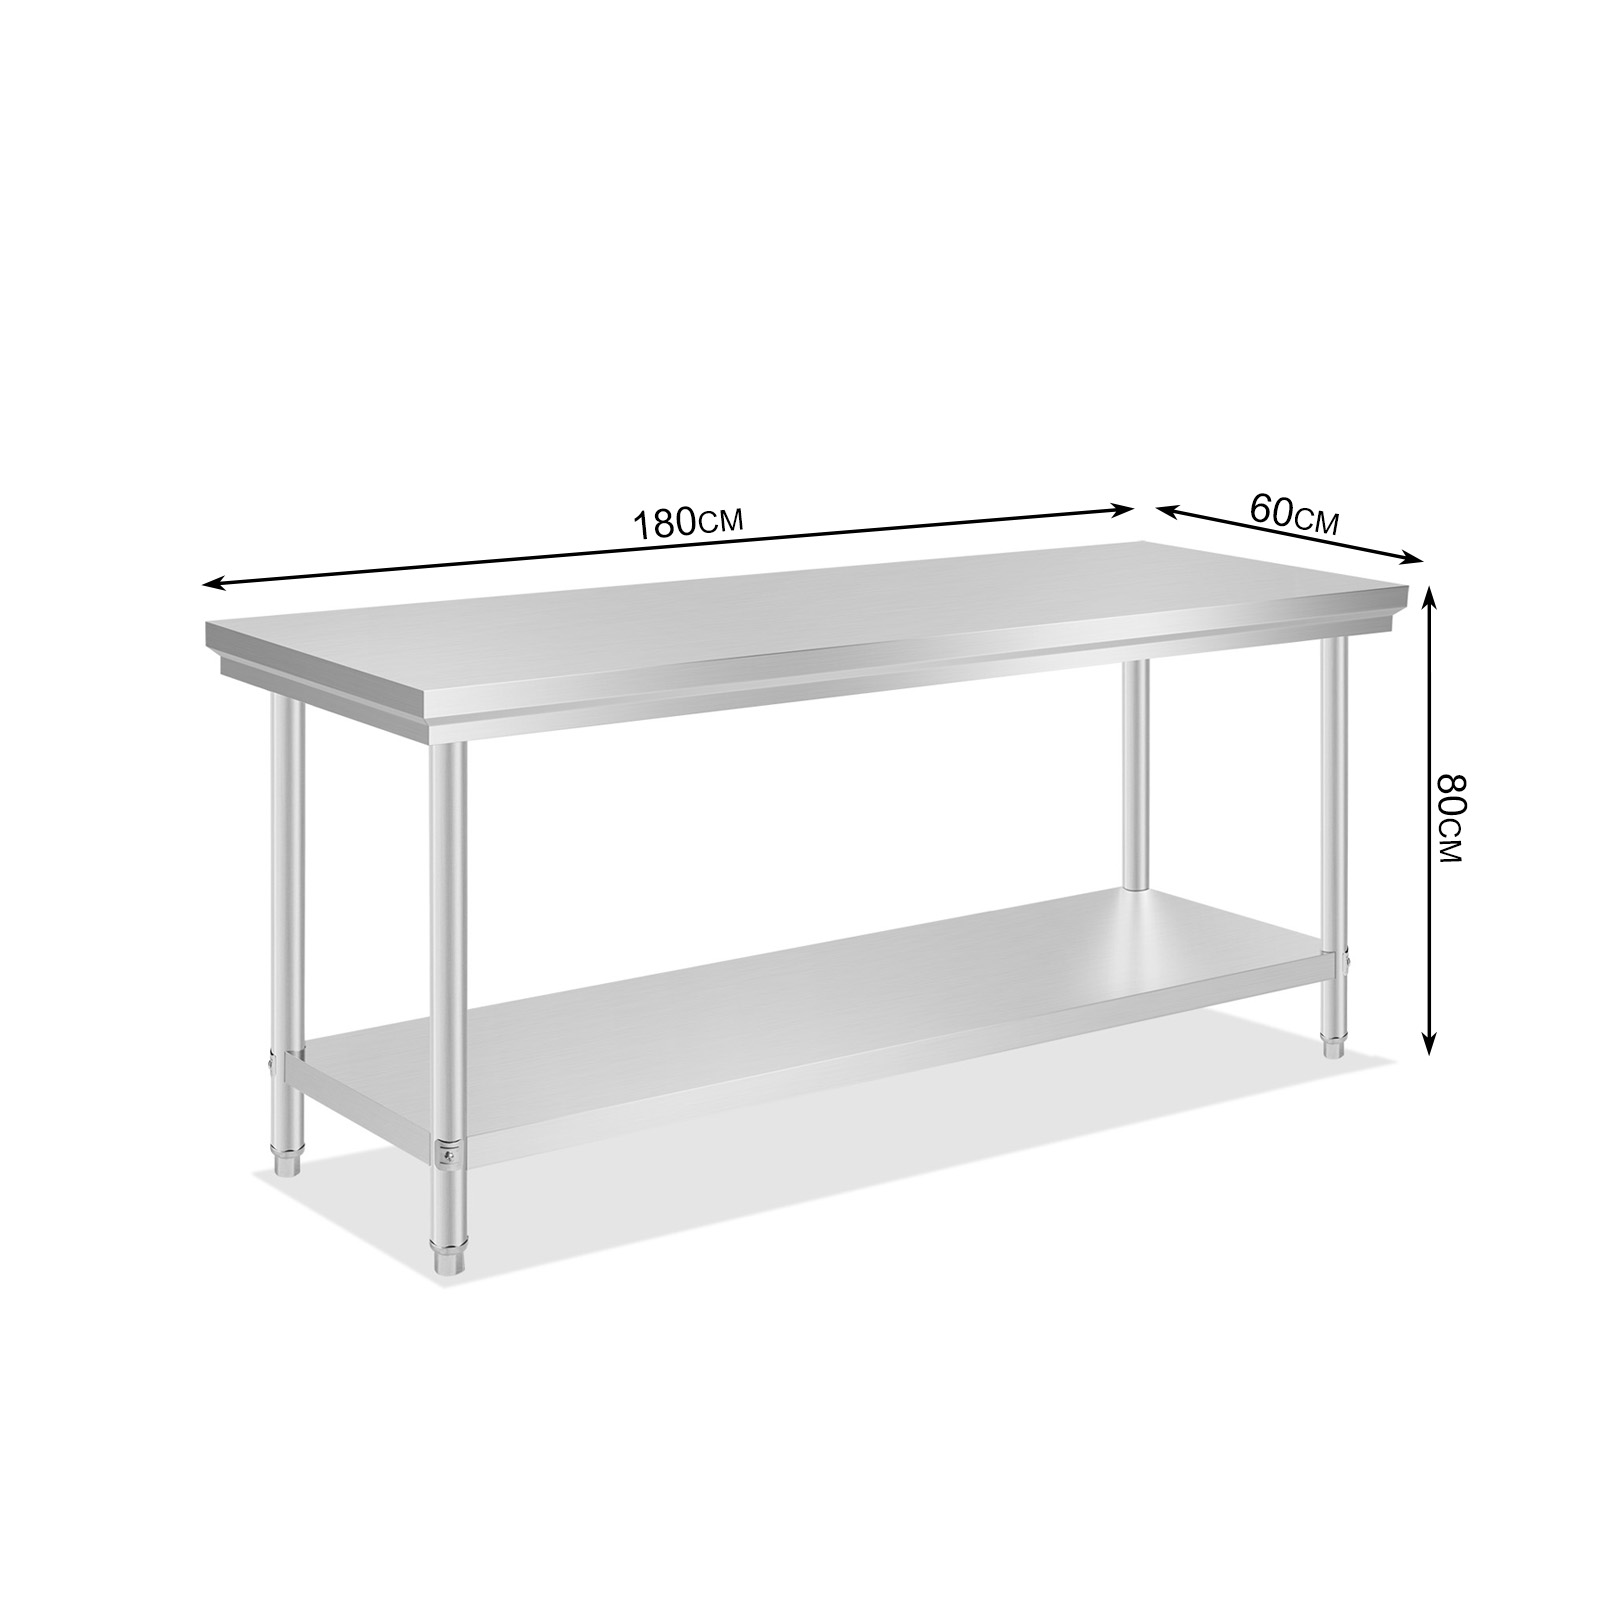 Industrial Kitchen Prep Table: Vevor New Commercial Kitchen Stainless Steel Food Work